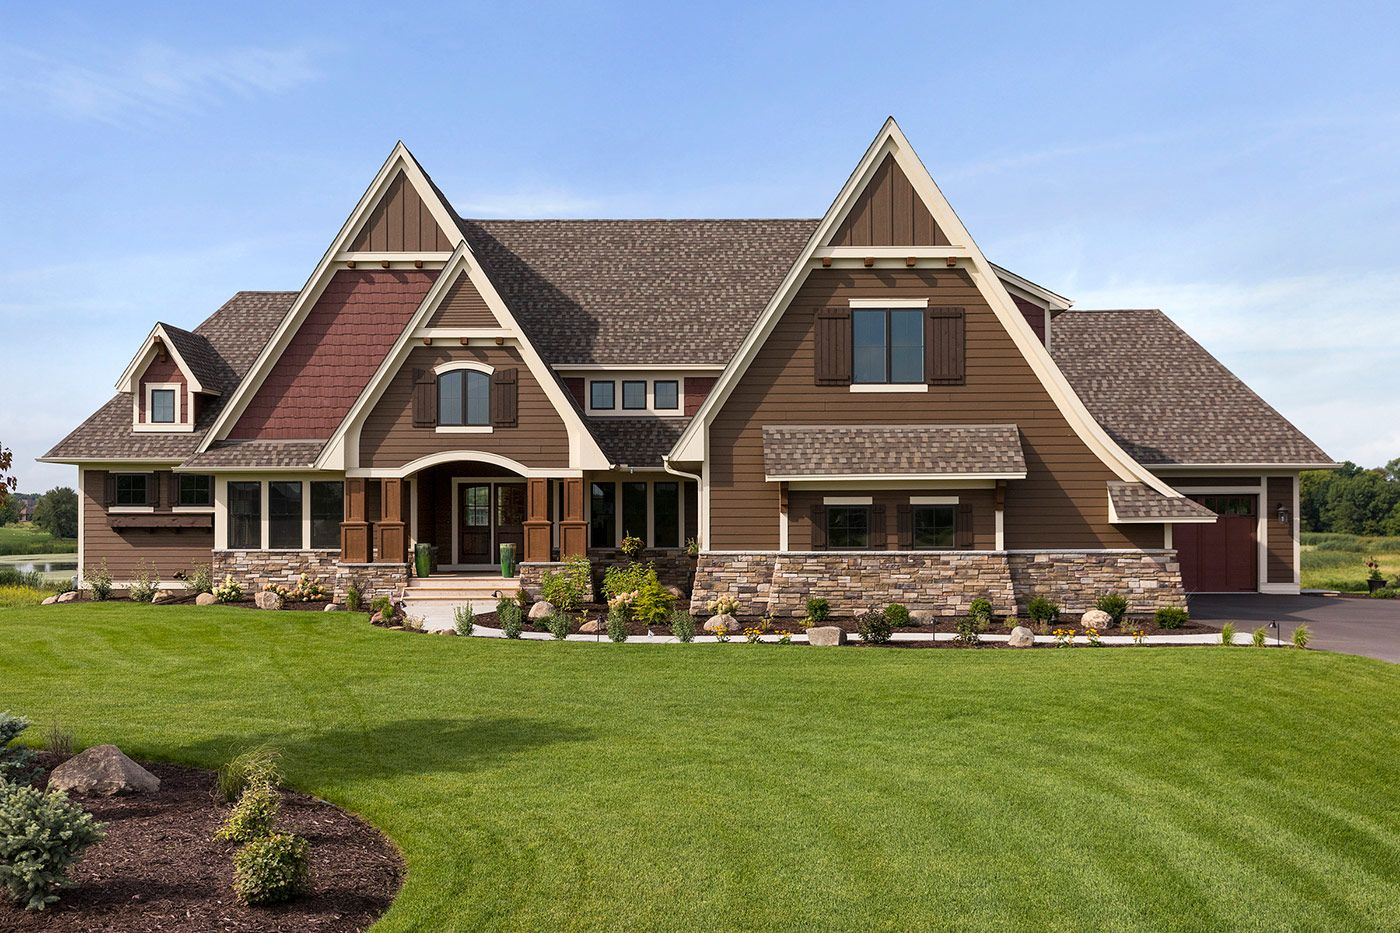 Custom Home Exteriors Custom Home Builders New Home Communities In Lakeville And Minneapolis Mn Custom Homes House Exterior Home Builders